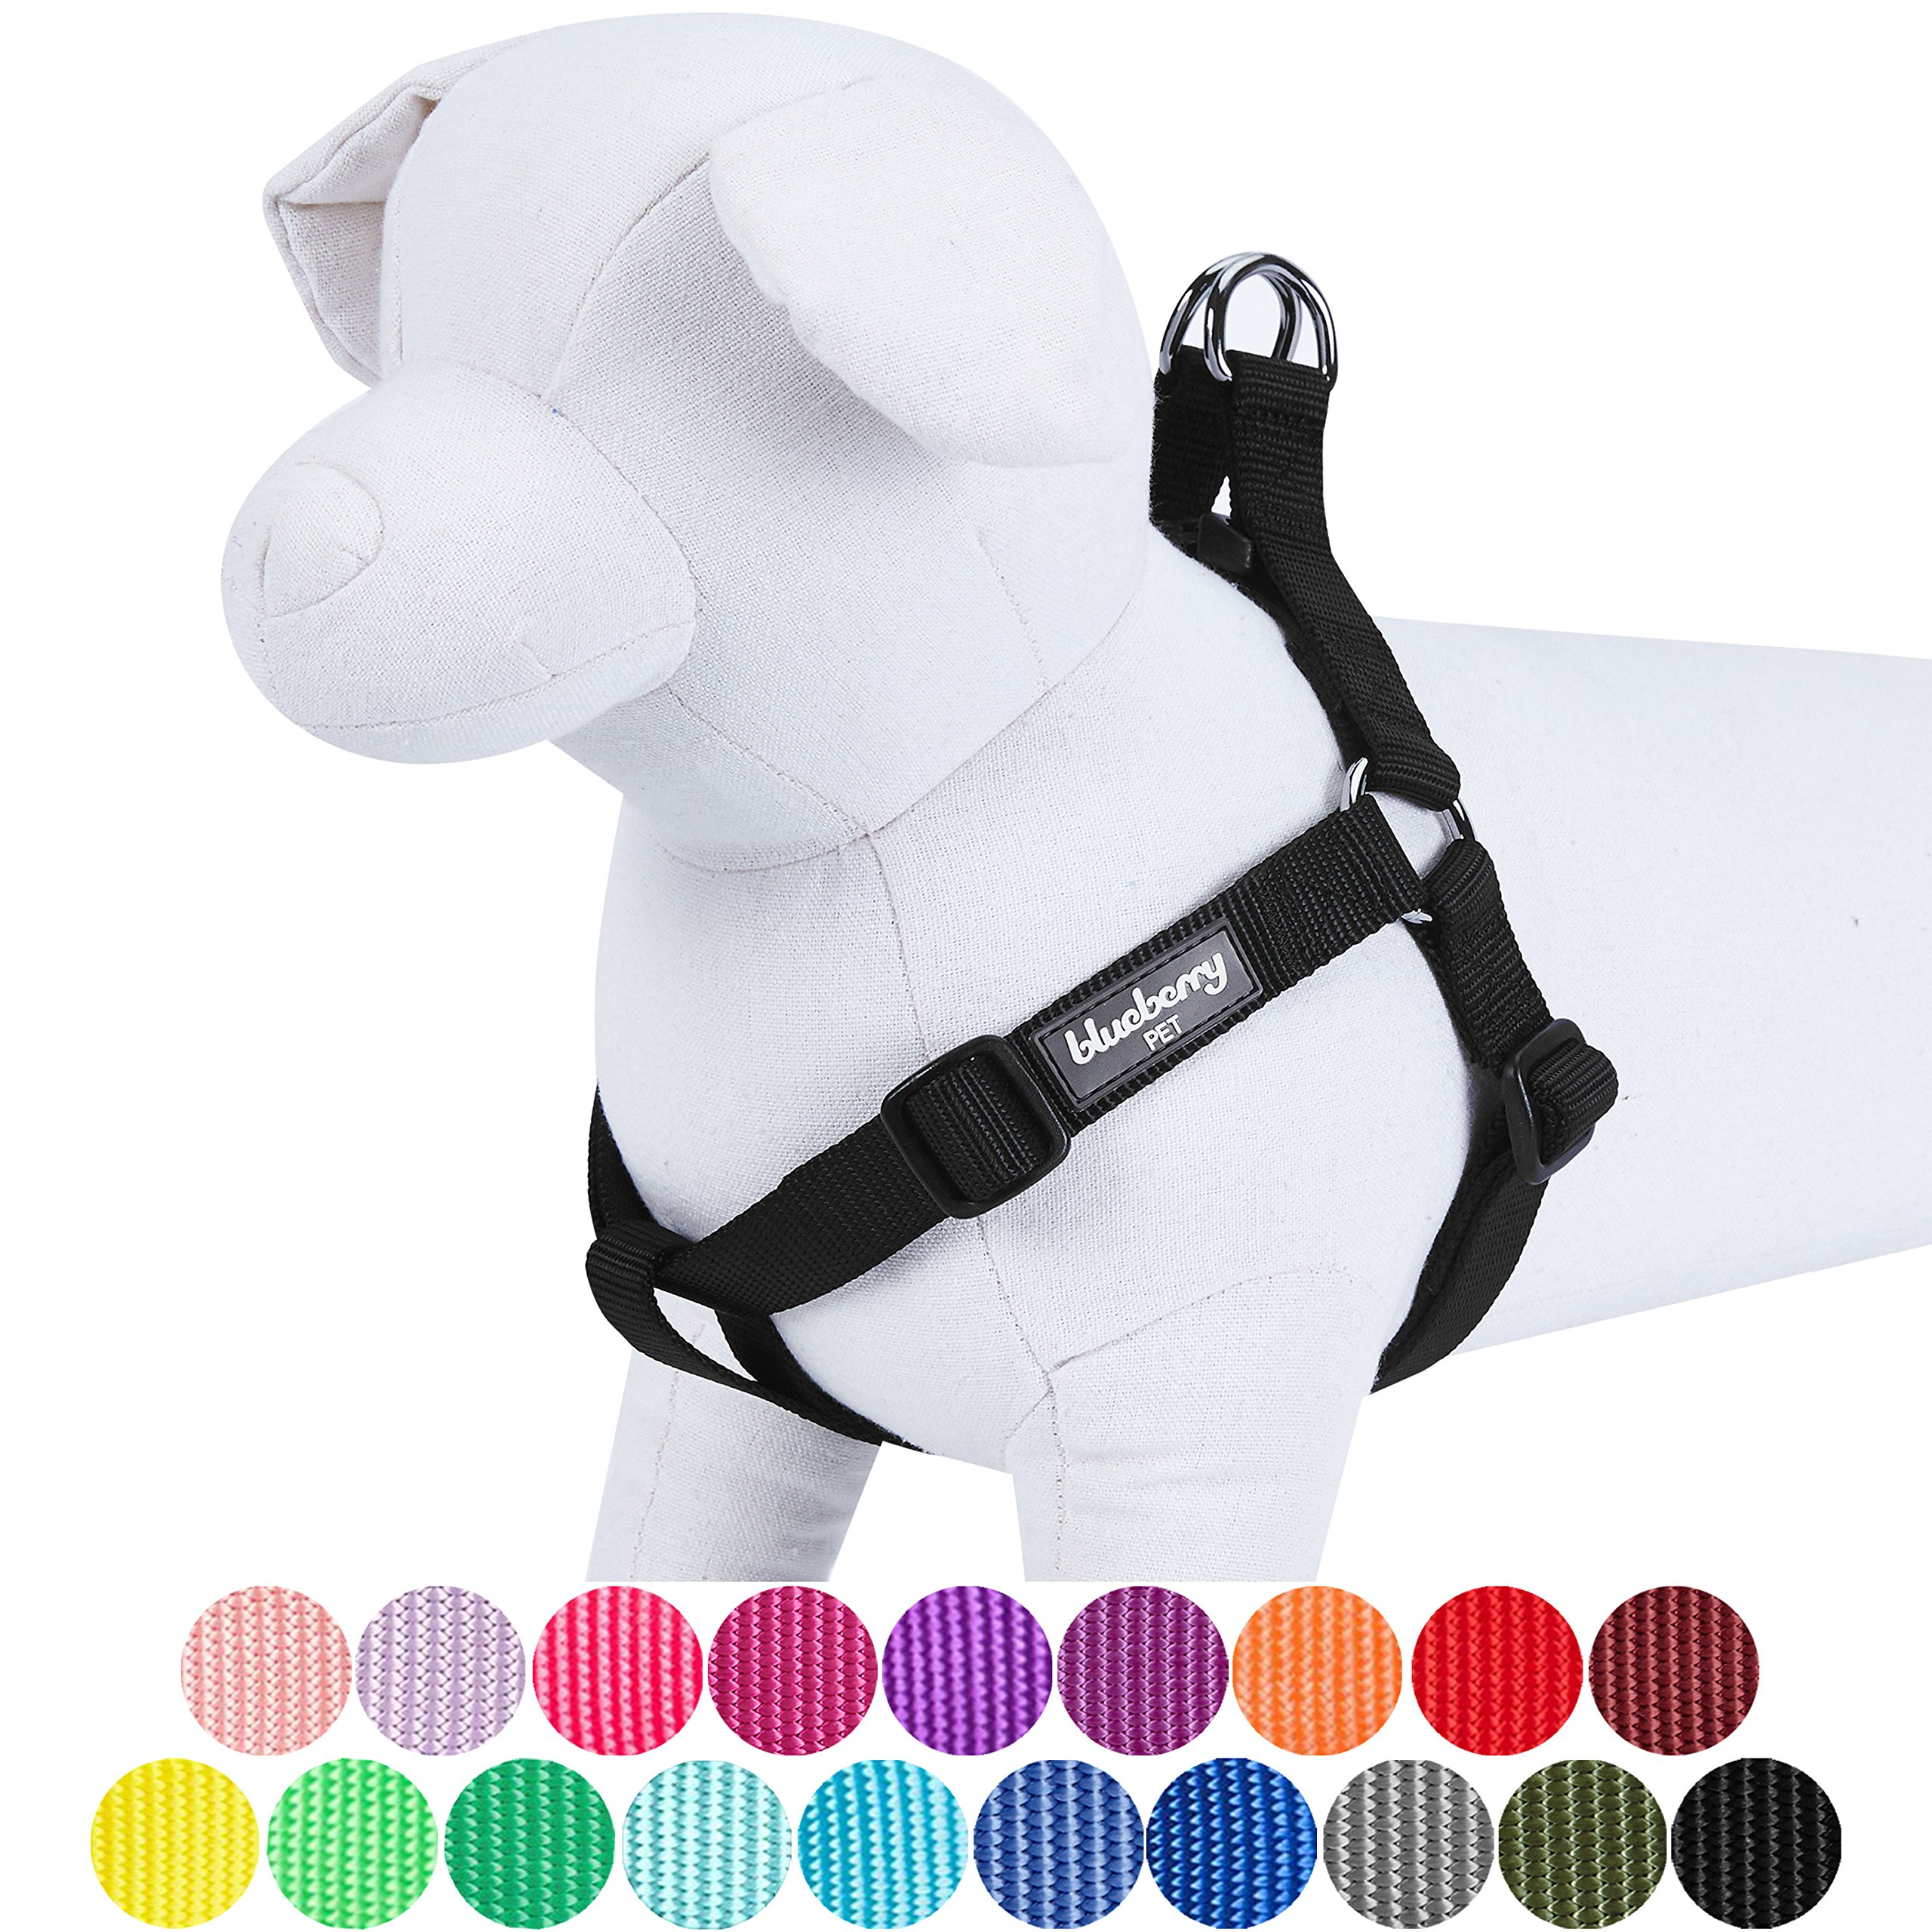 Blueberry Pet 19 Colors Step-in Classic Dog Harness, Chest Girth 20'' - 26'', Black, Medium, Adjustable Harnesses Dogs